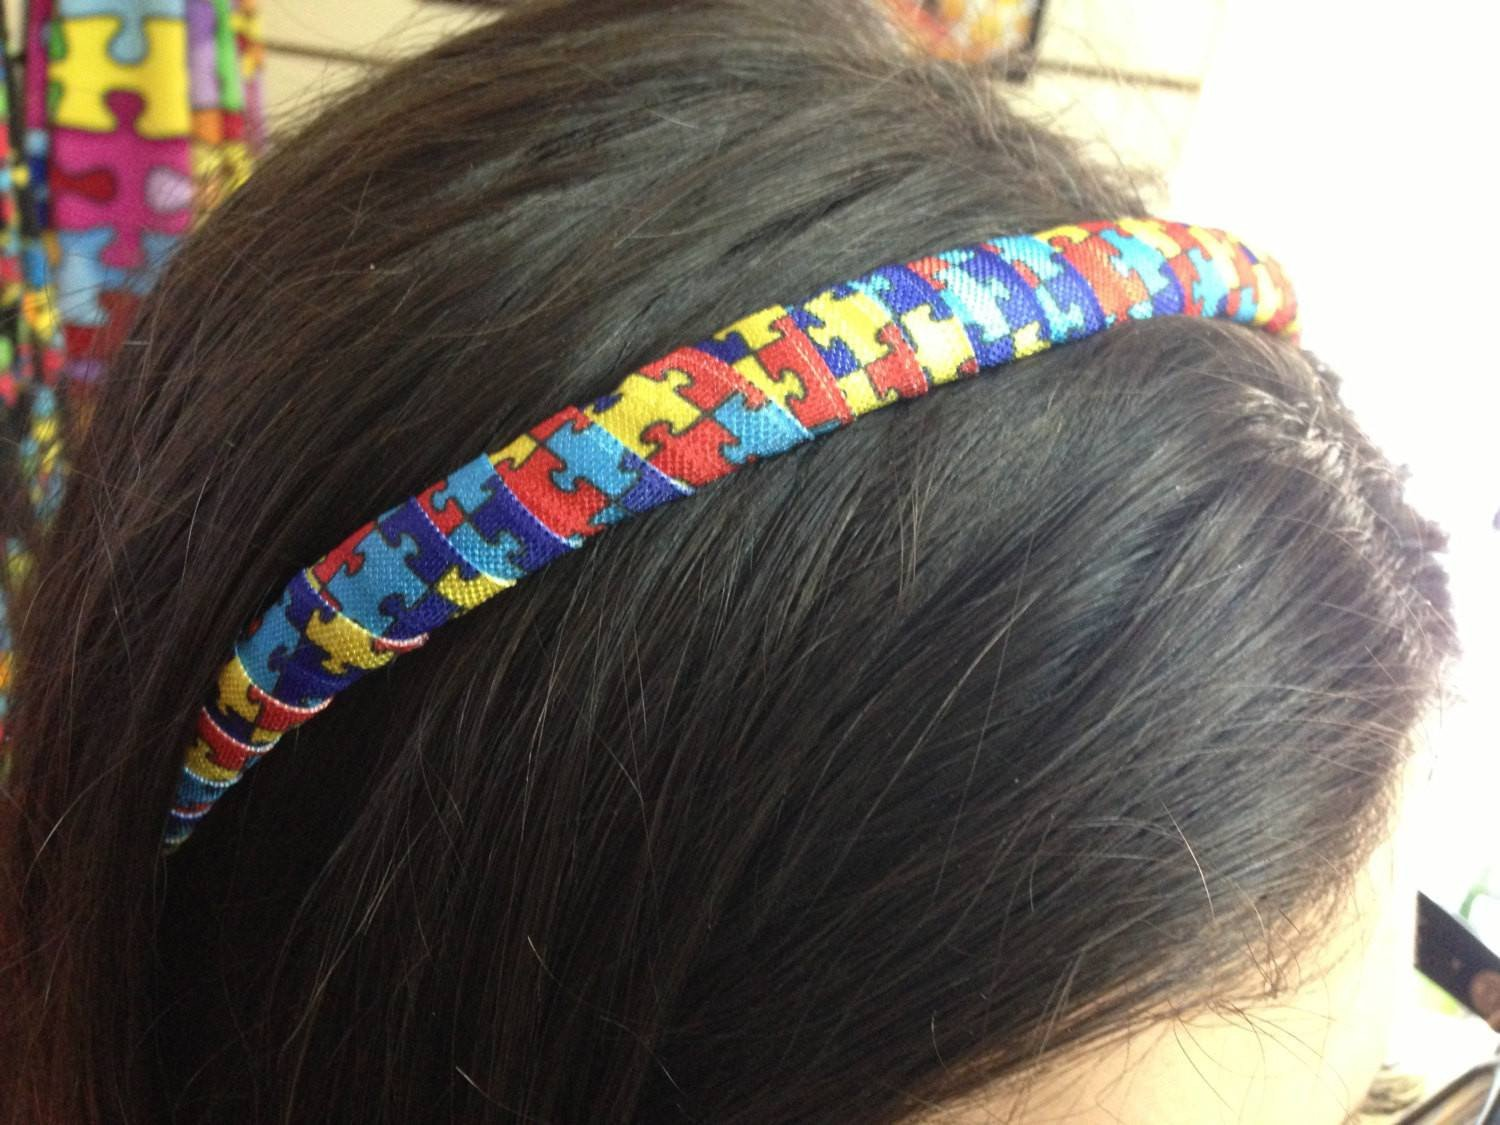 Colorful Autism Awareness Hairband Headband.  Puzzle Piece Headband.